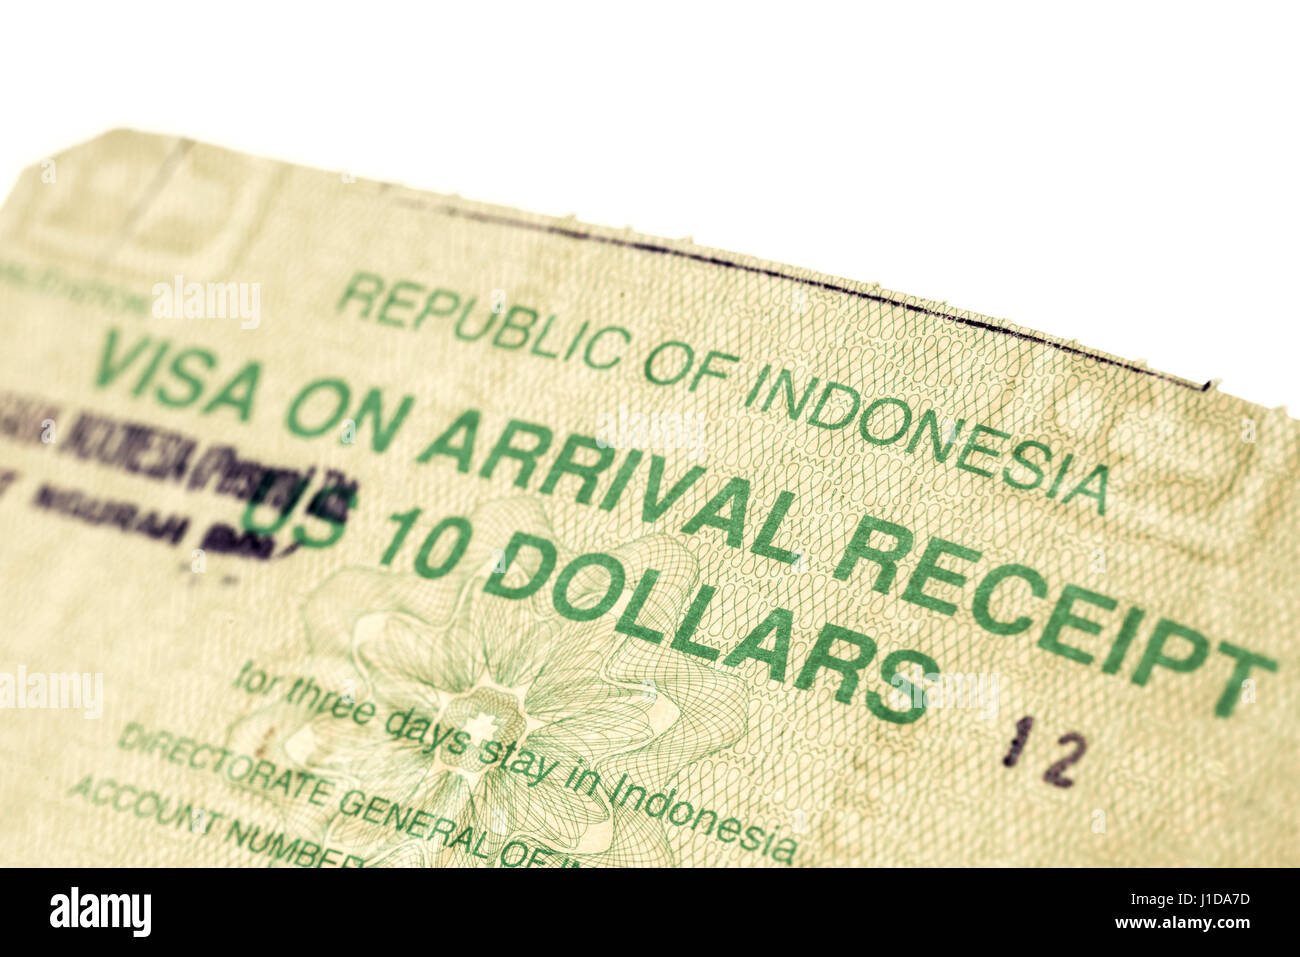 Temporary visa document for Indonesia - Stock Image